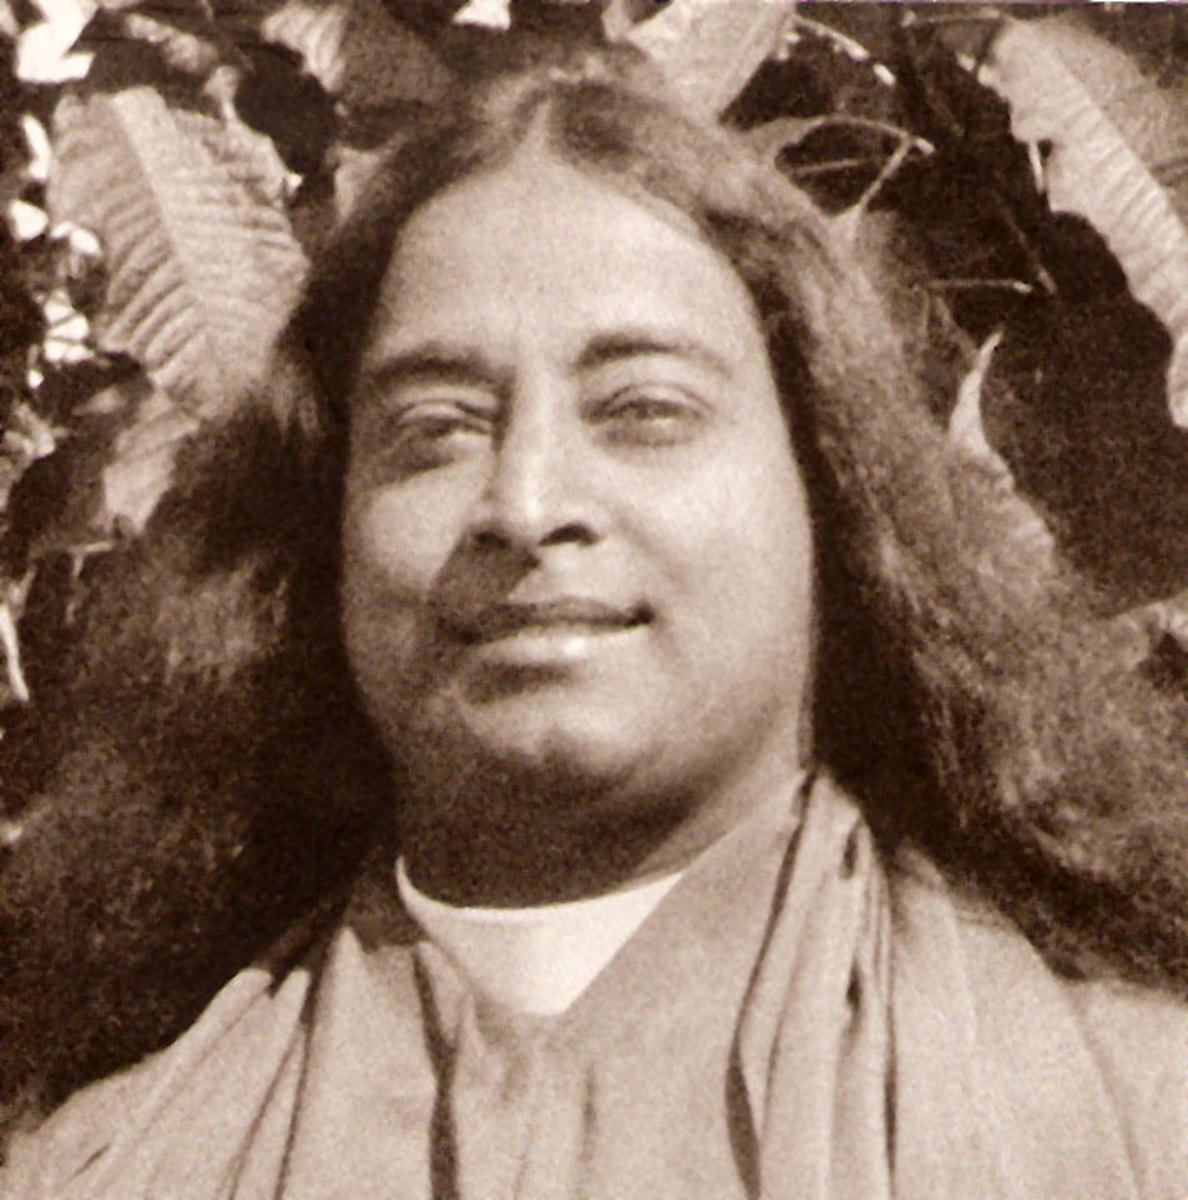 A photo of Yogananda smiling.